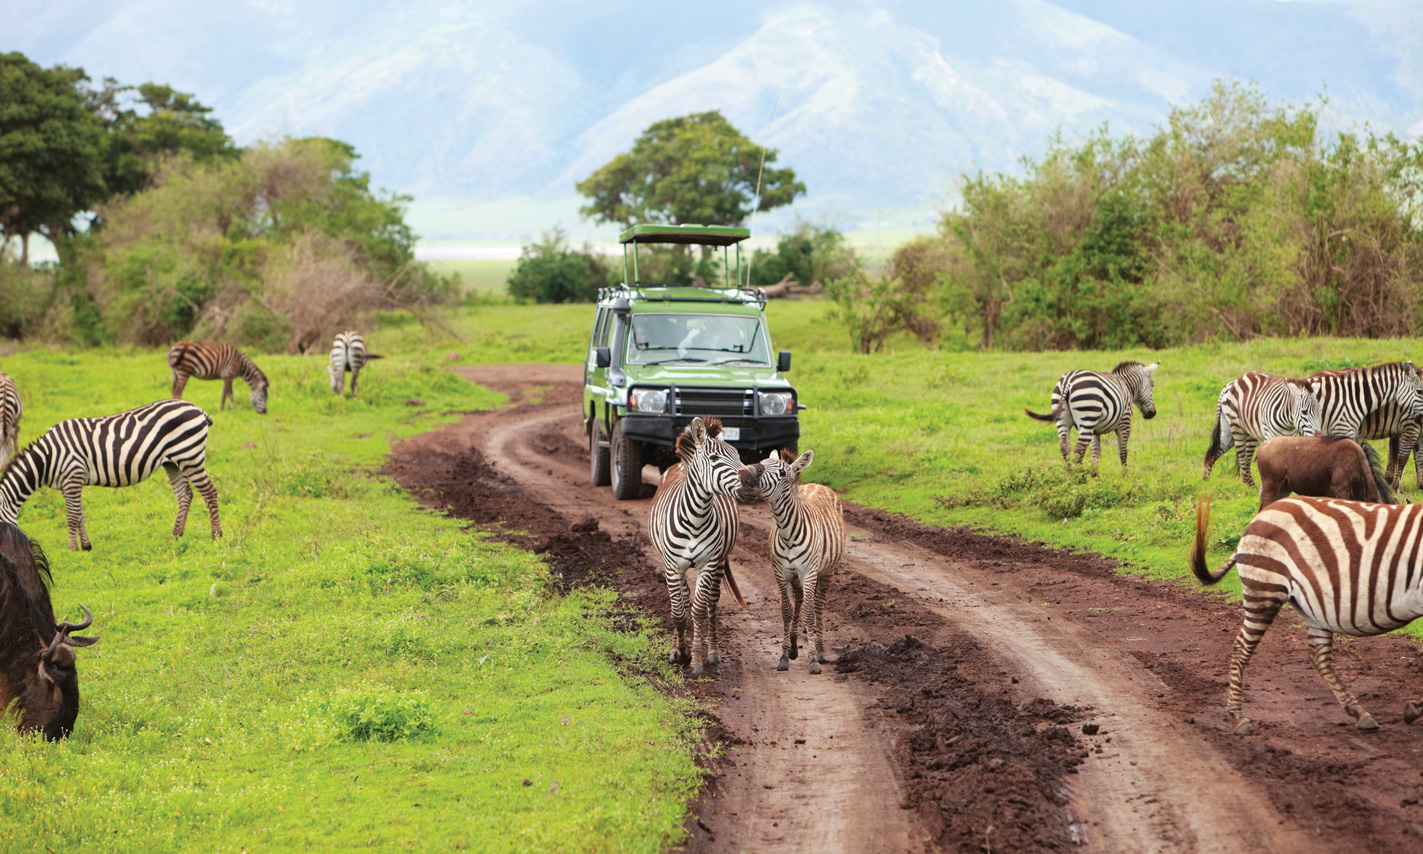 Wake Up To Your Wildest Dreams In Africa Globus Blog